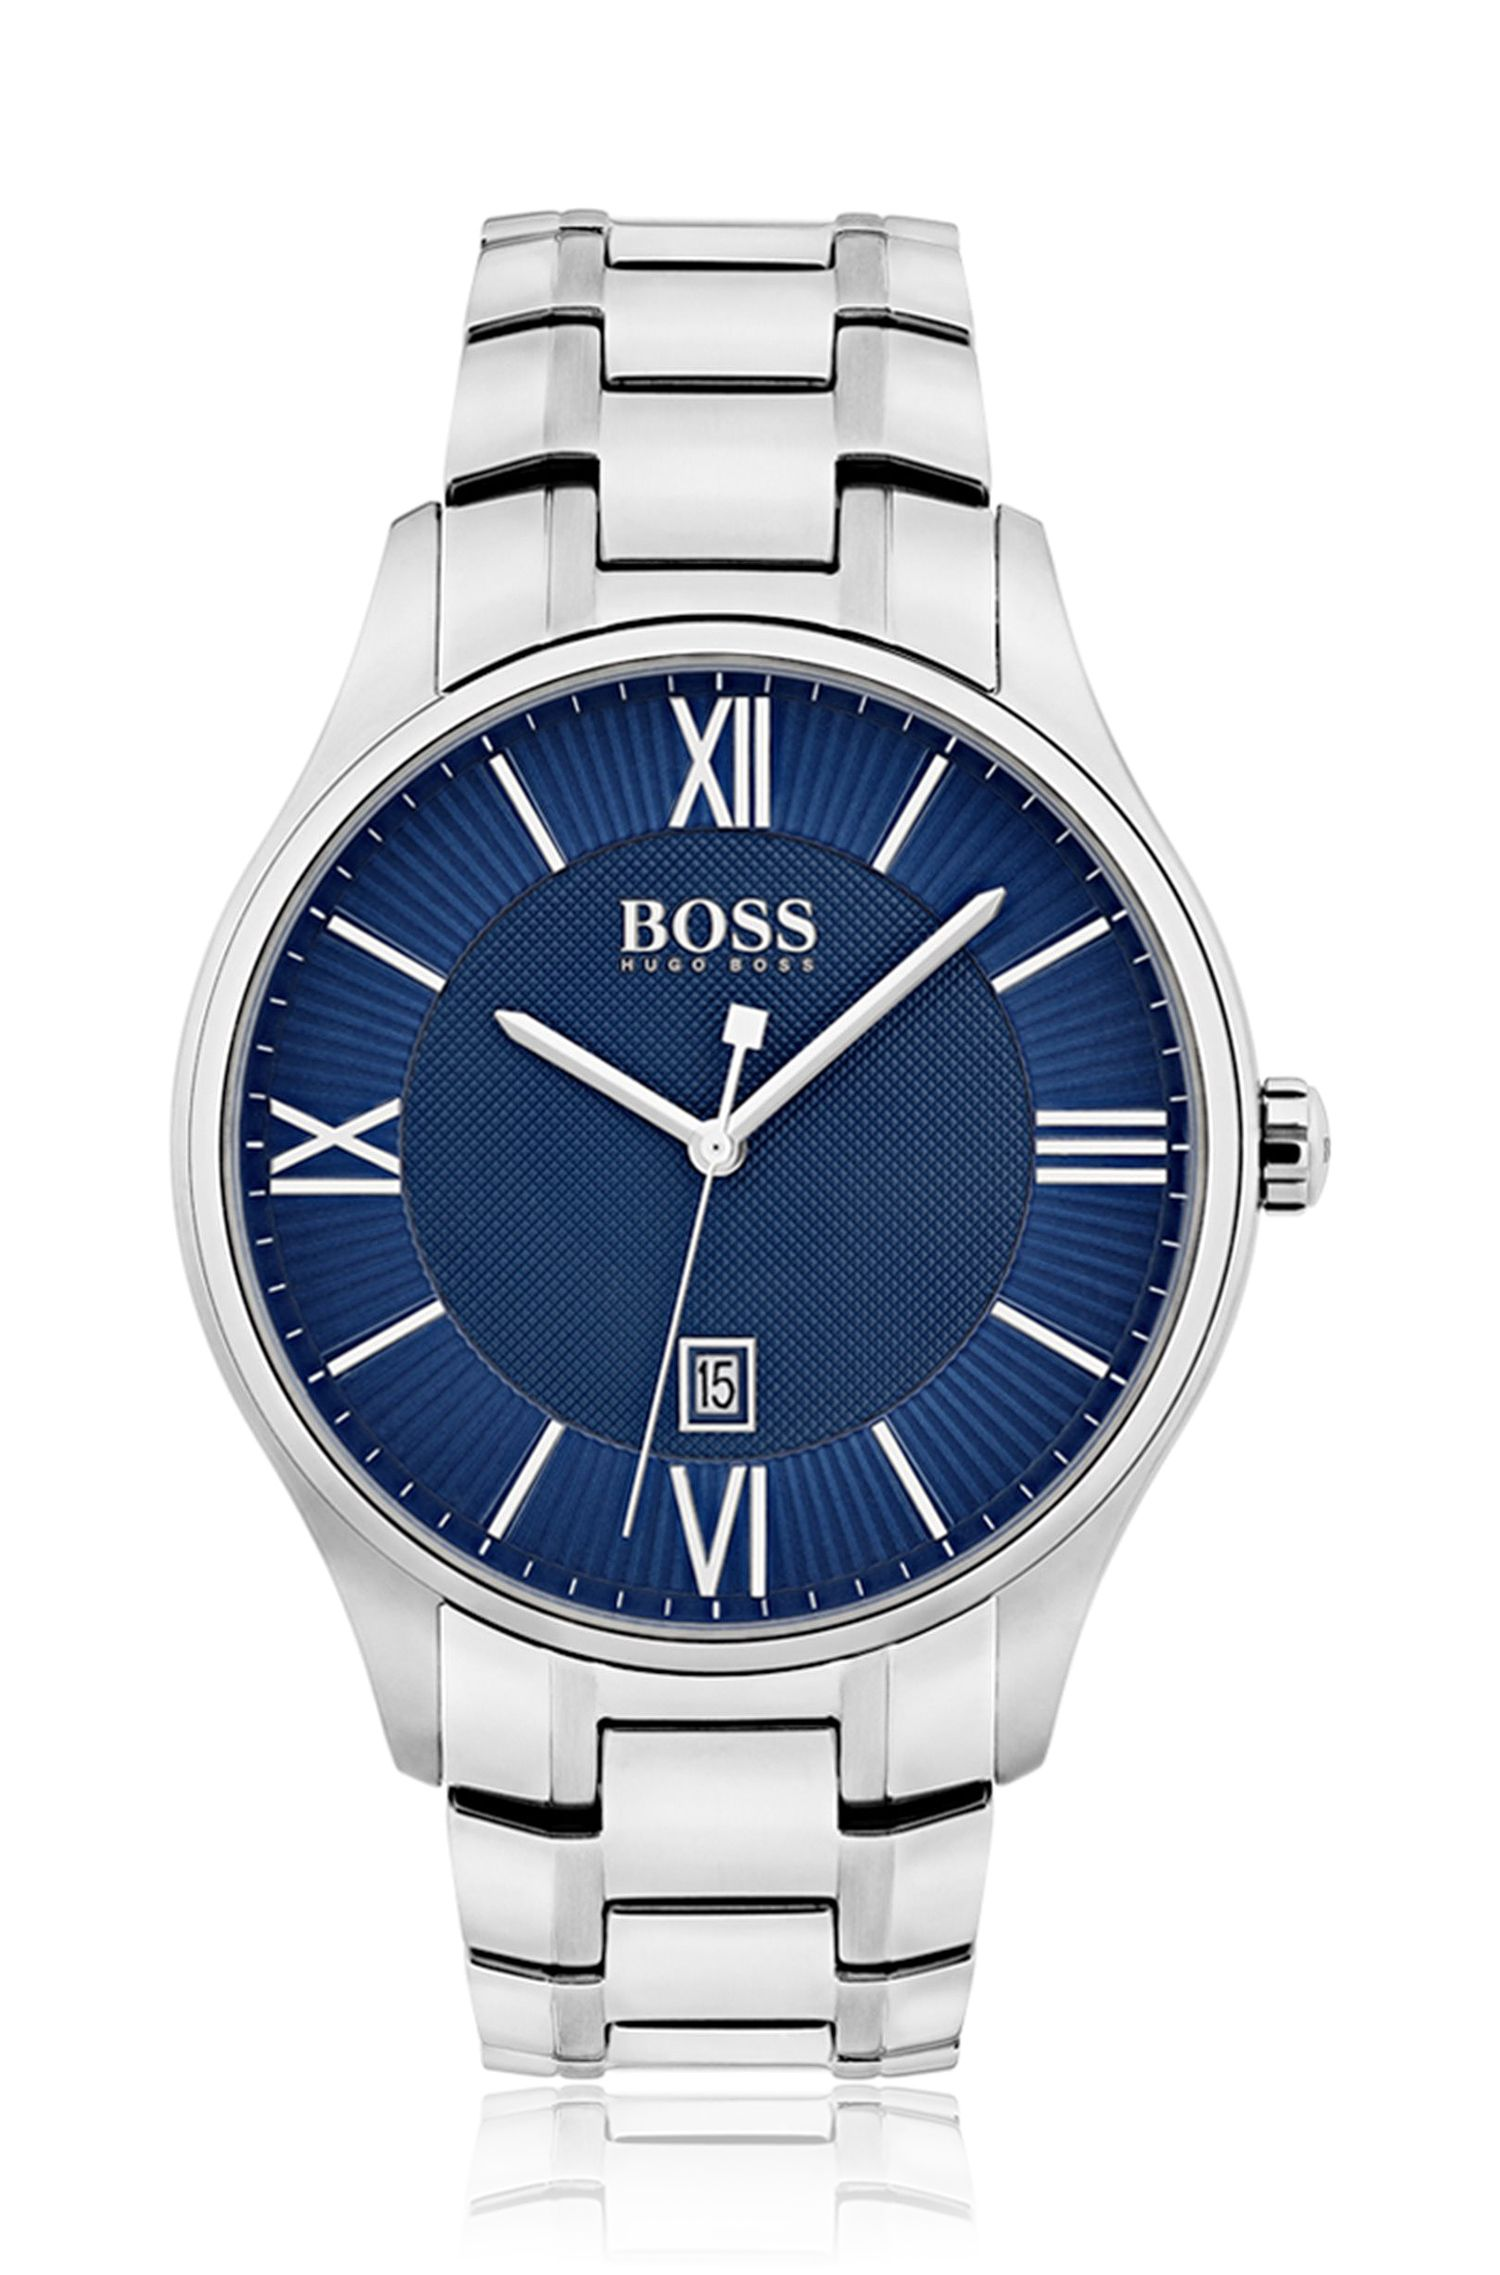 Three-hand watch with blue dial and stainless-steel bracelet